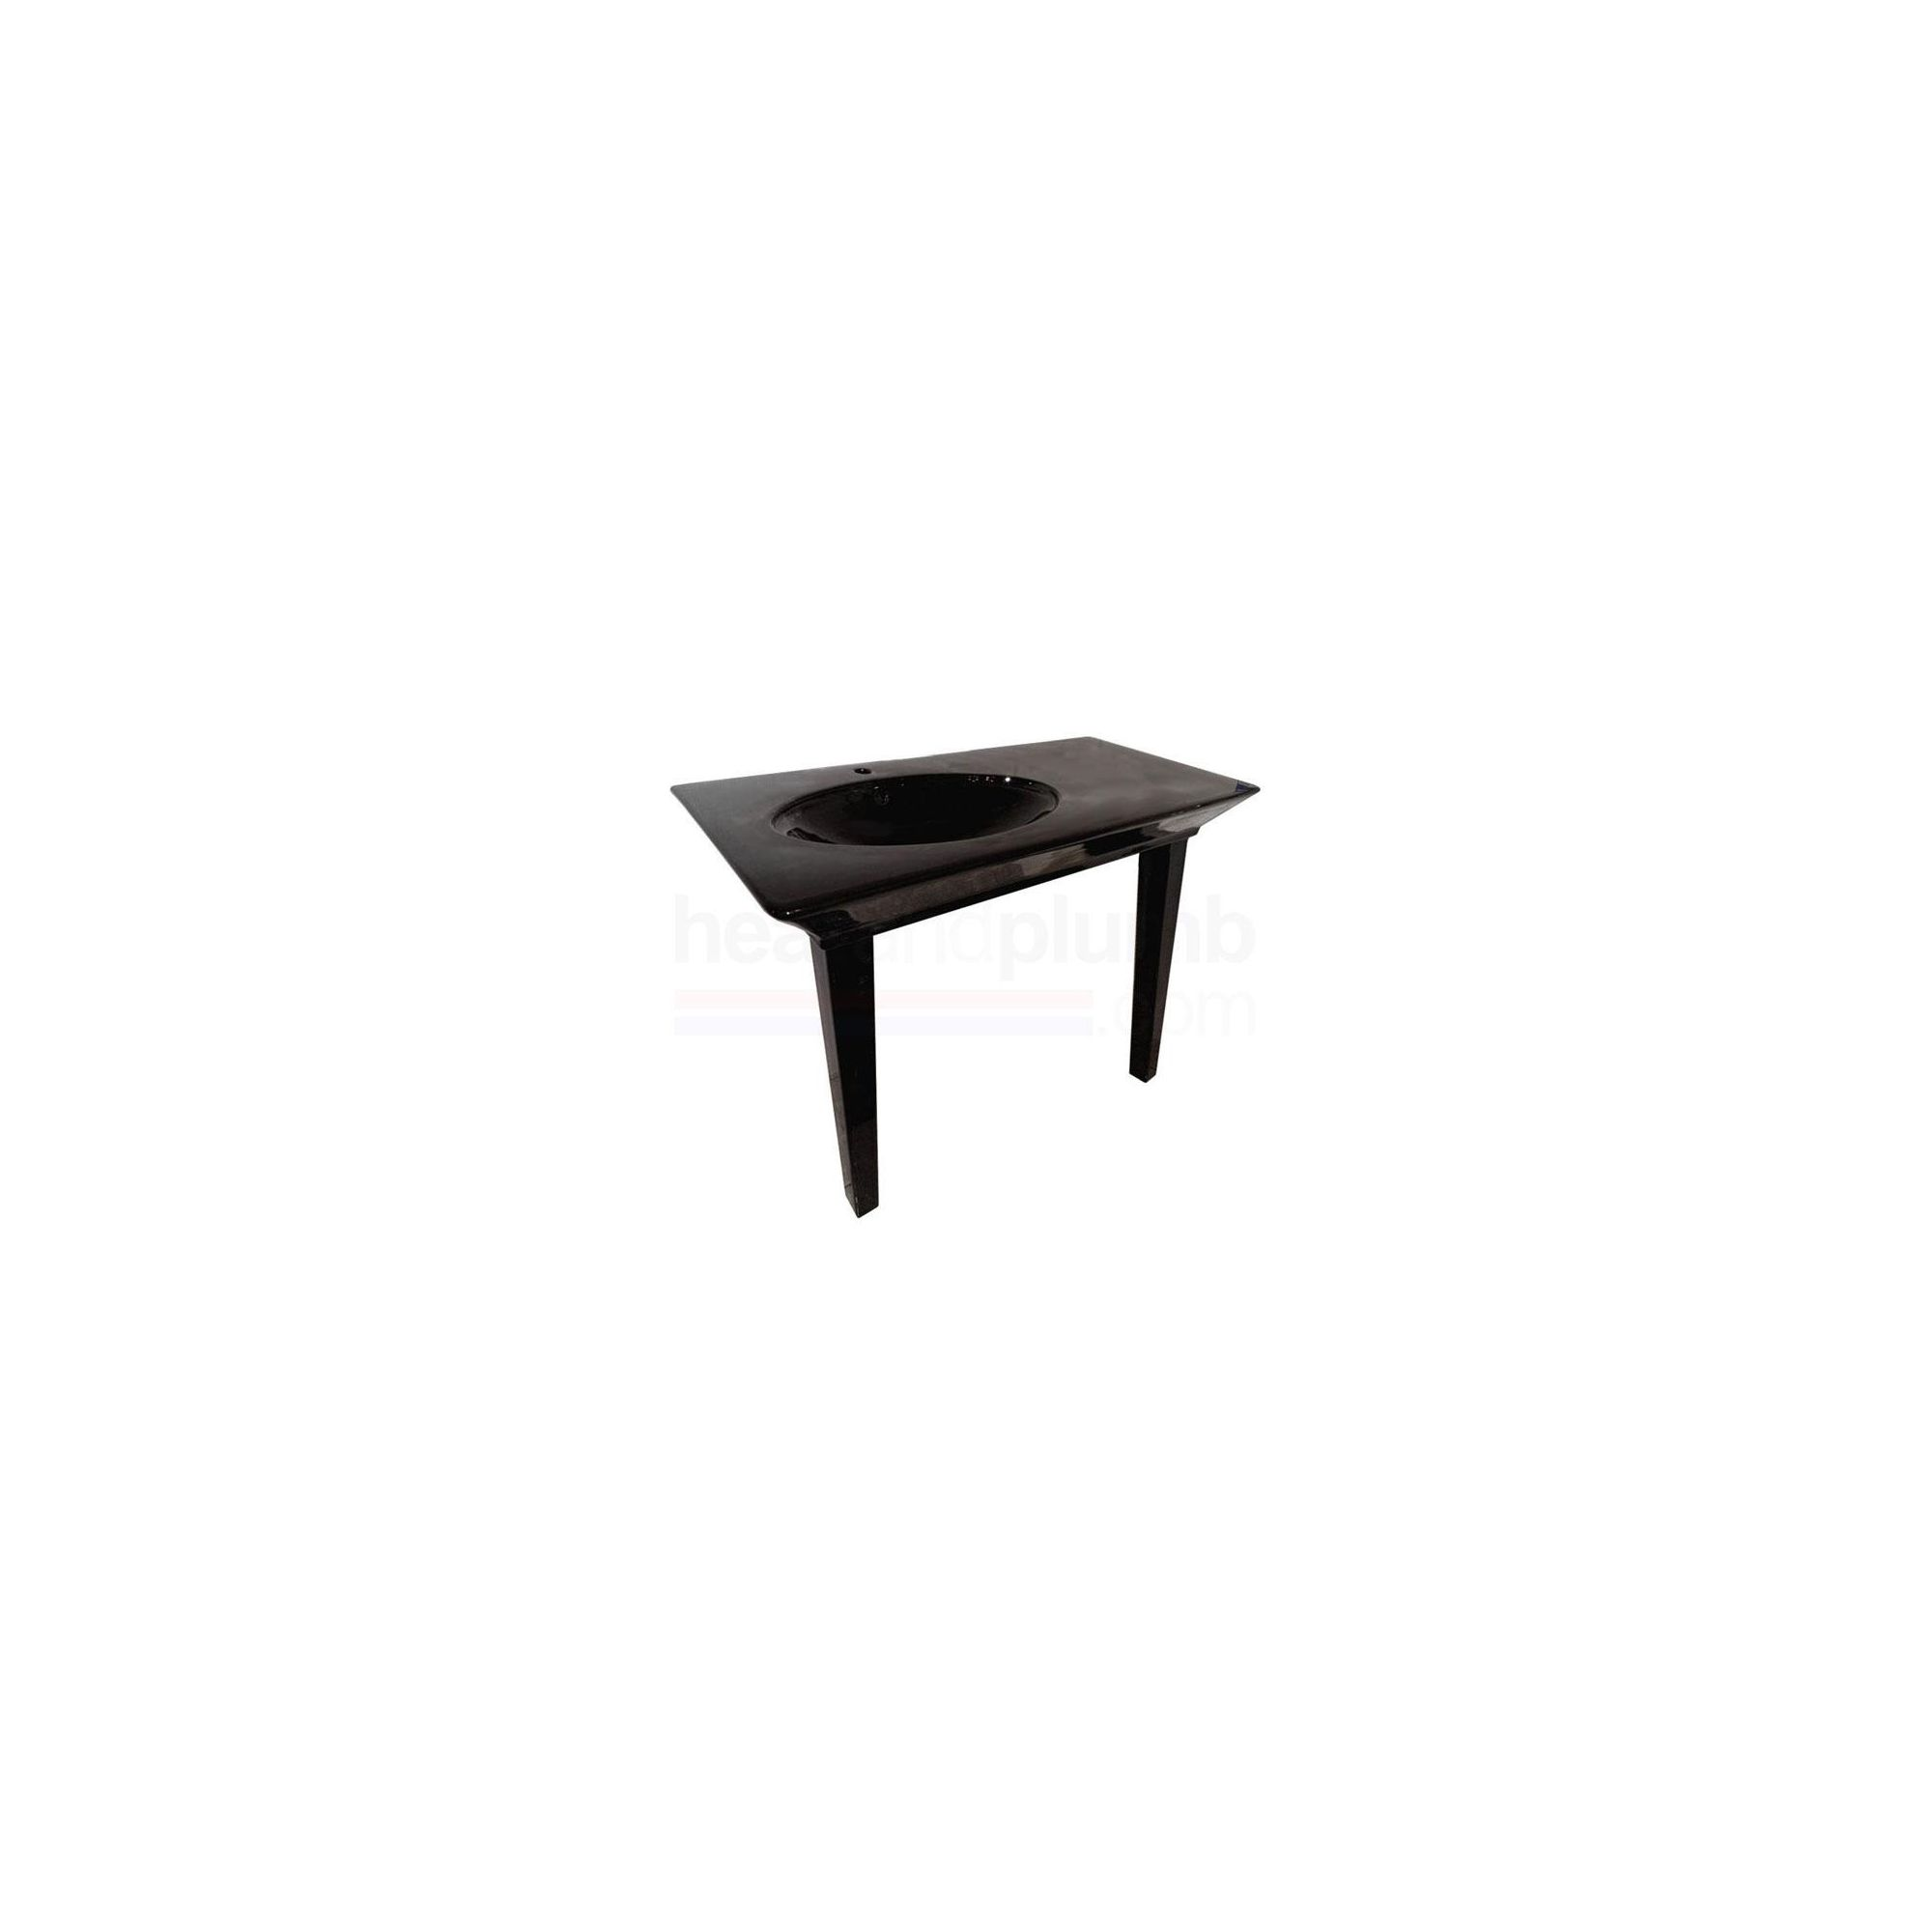 RAK Opulence Black 'Her' 1 Piece Countertop Basin with Legs 800mm Wide at Tesco Direct